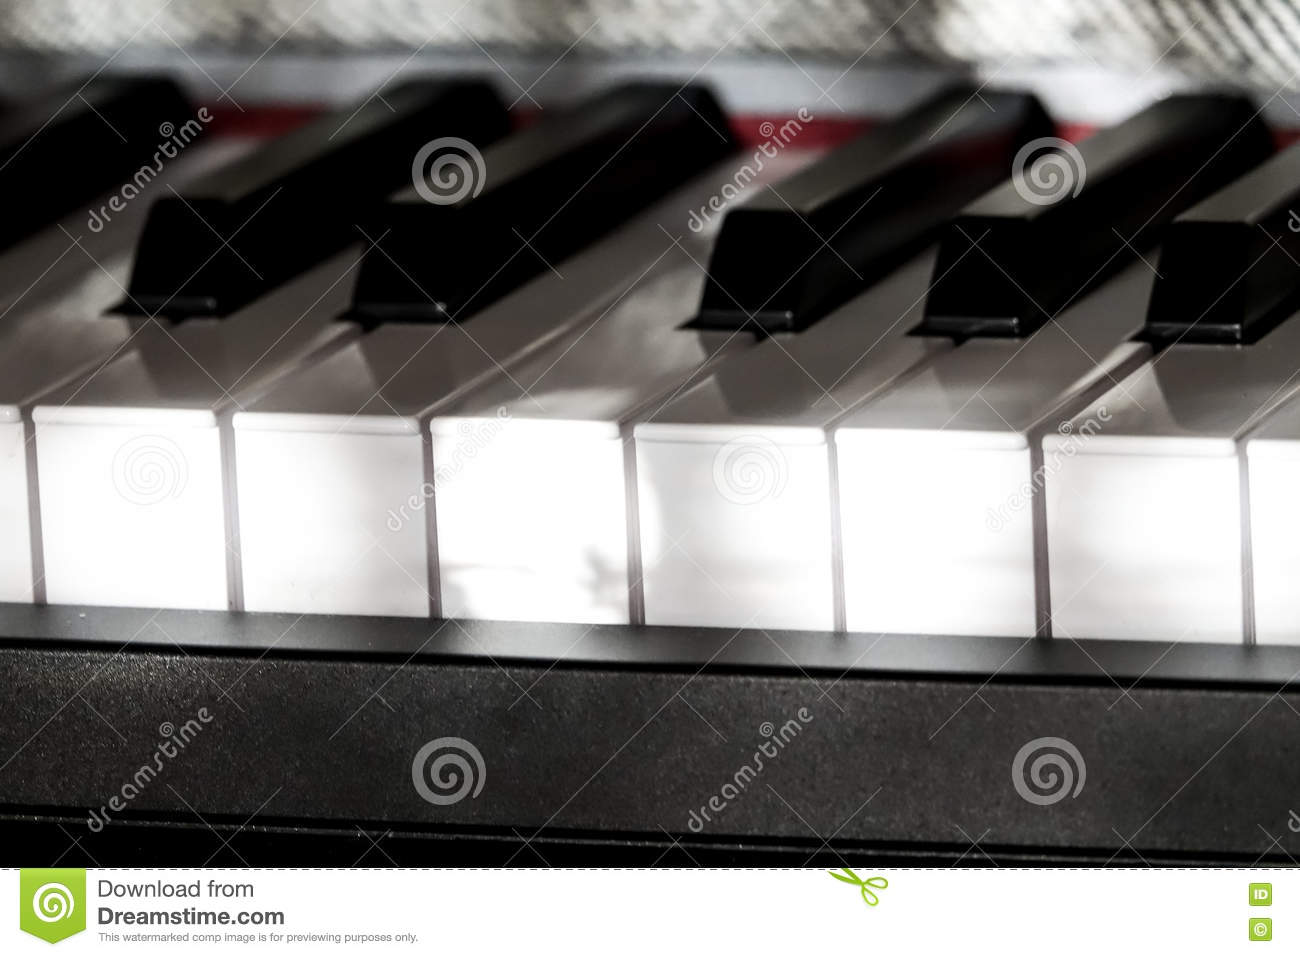 Perfect Piano keys in mild sunlight with grey cover